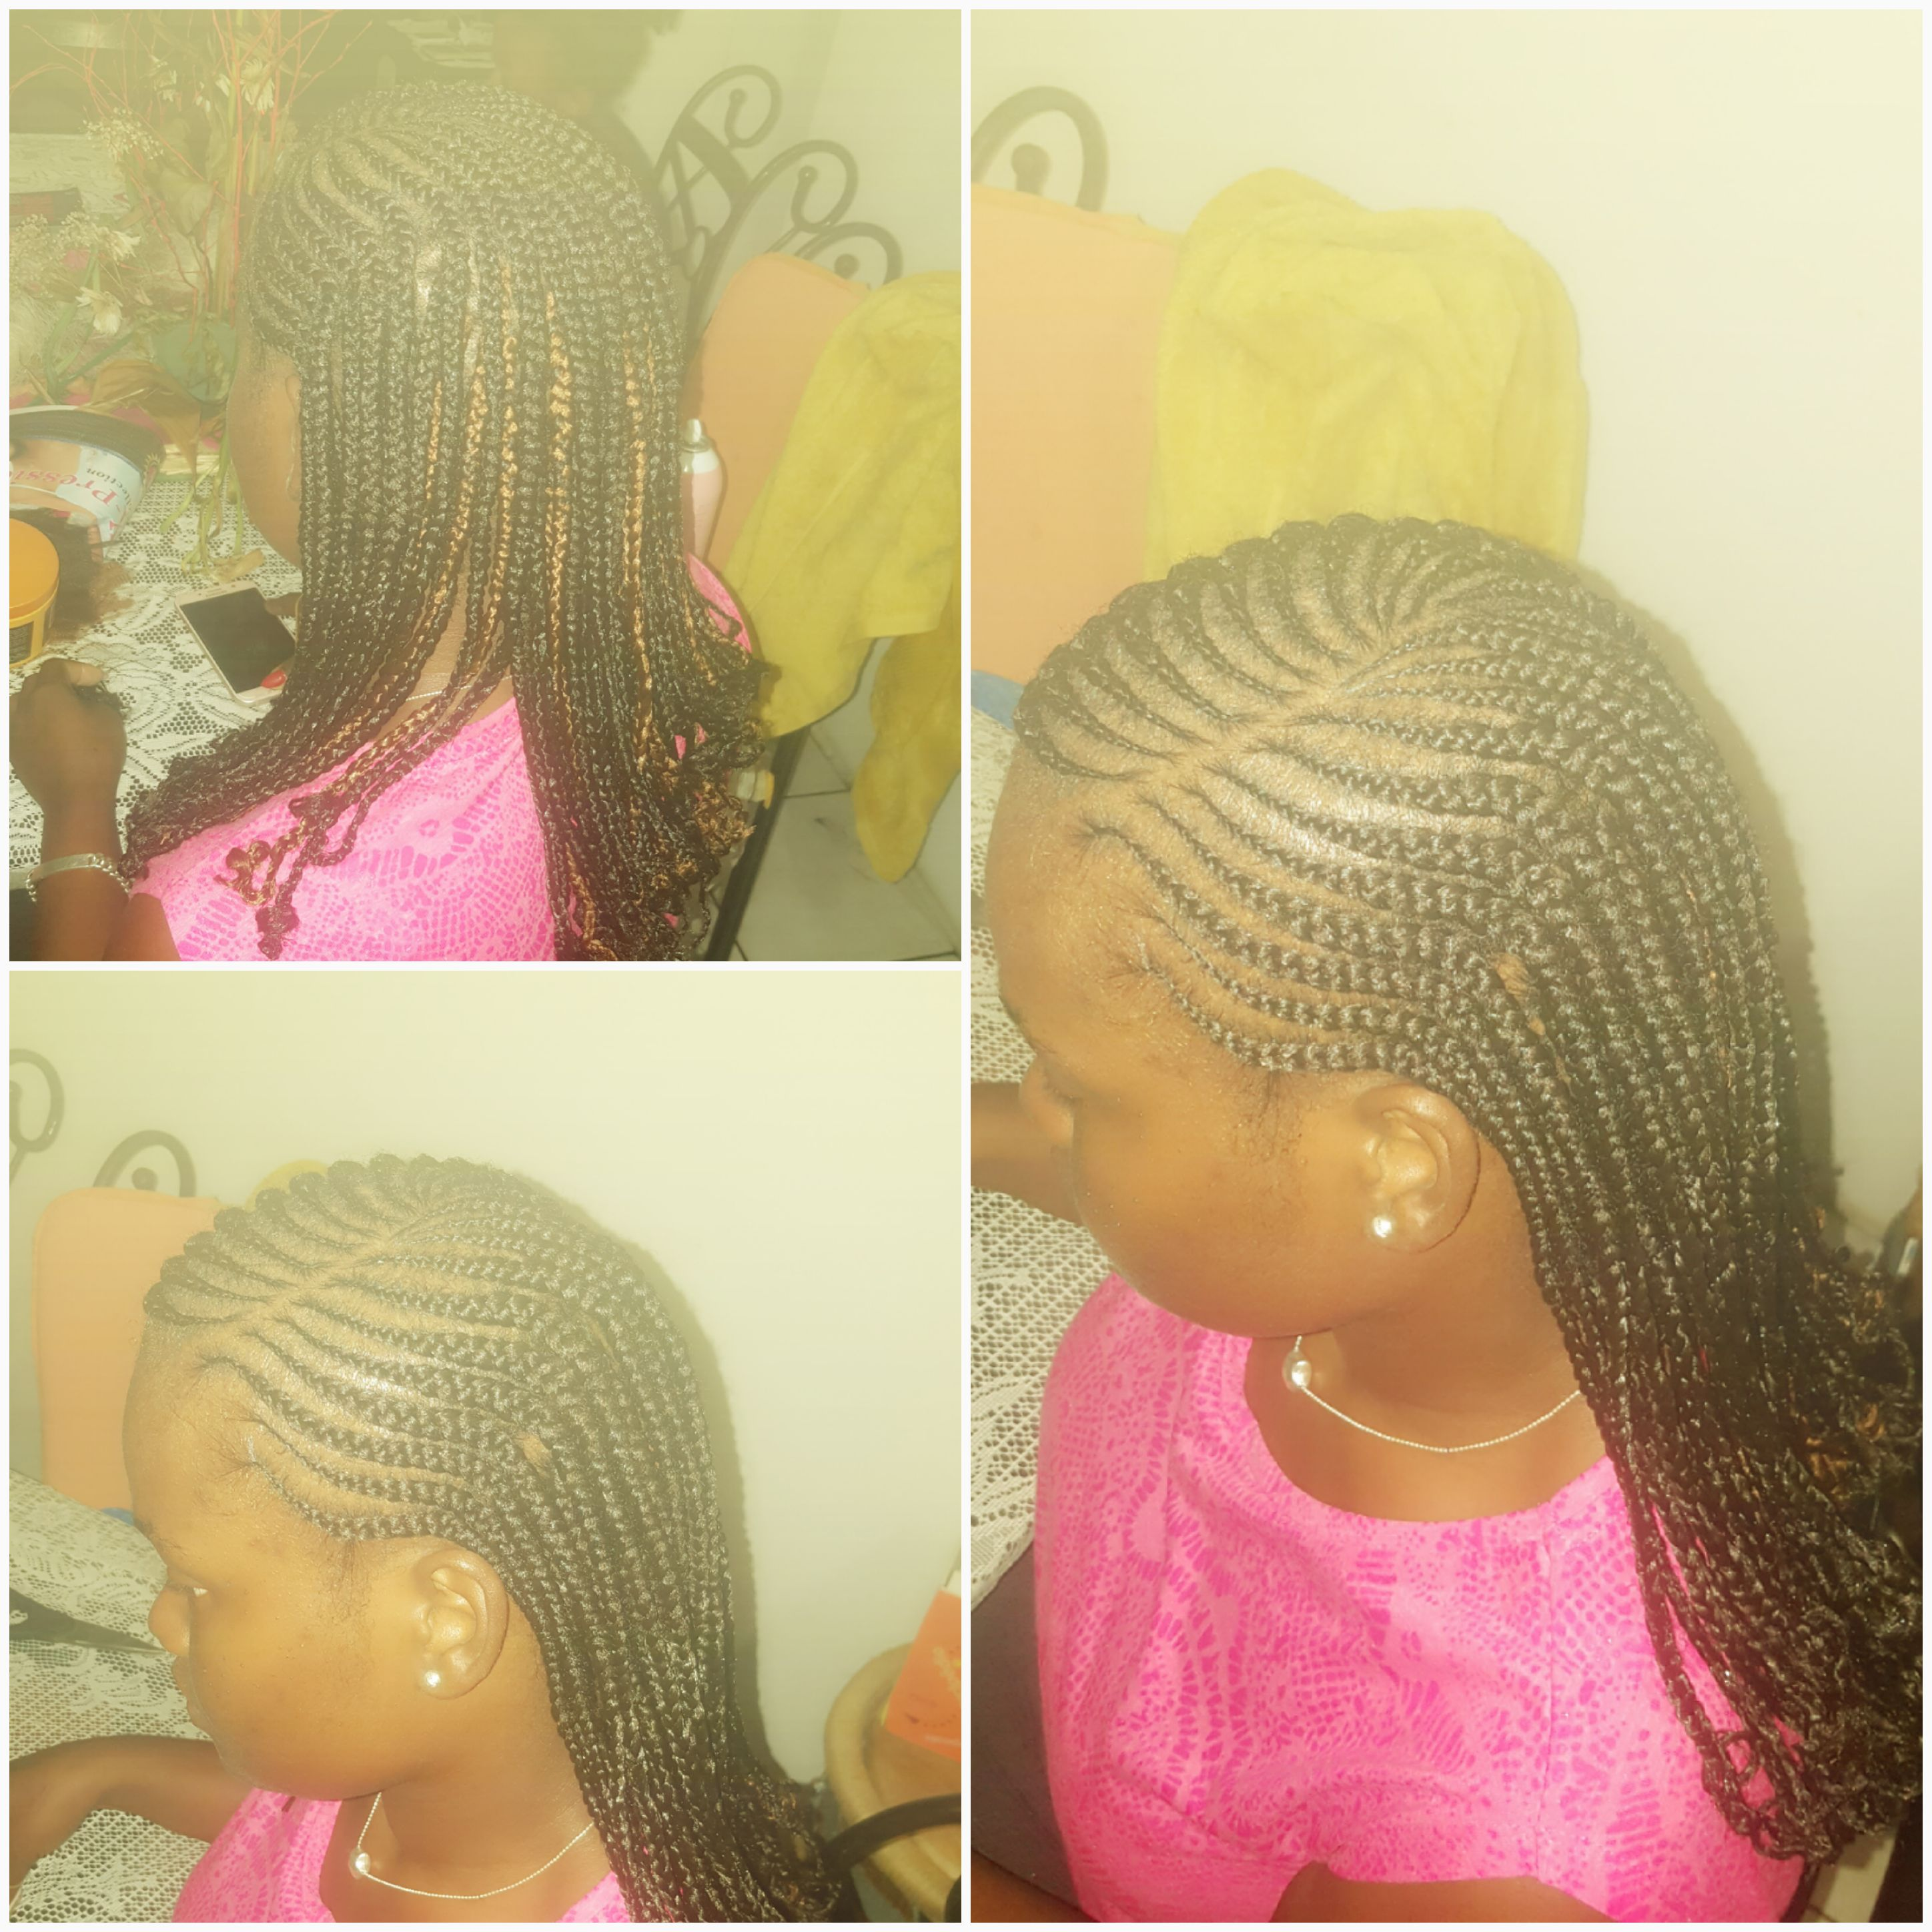 salon de coiffure afro tresse tresses box braids crochet braids vanilles tissages paris 75 77 78 91 92 93 94 95 HLNOZQNR